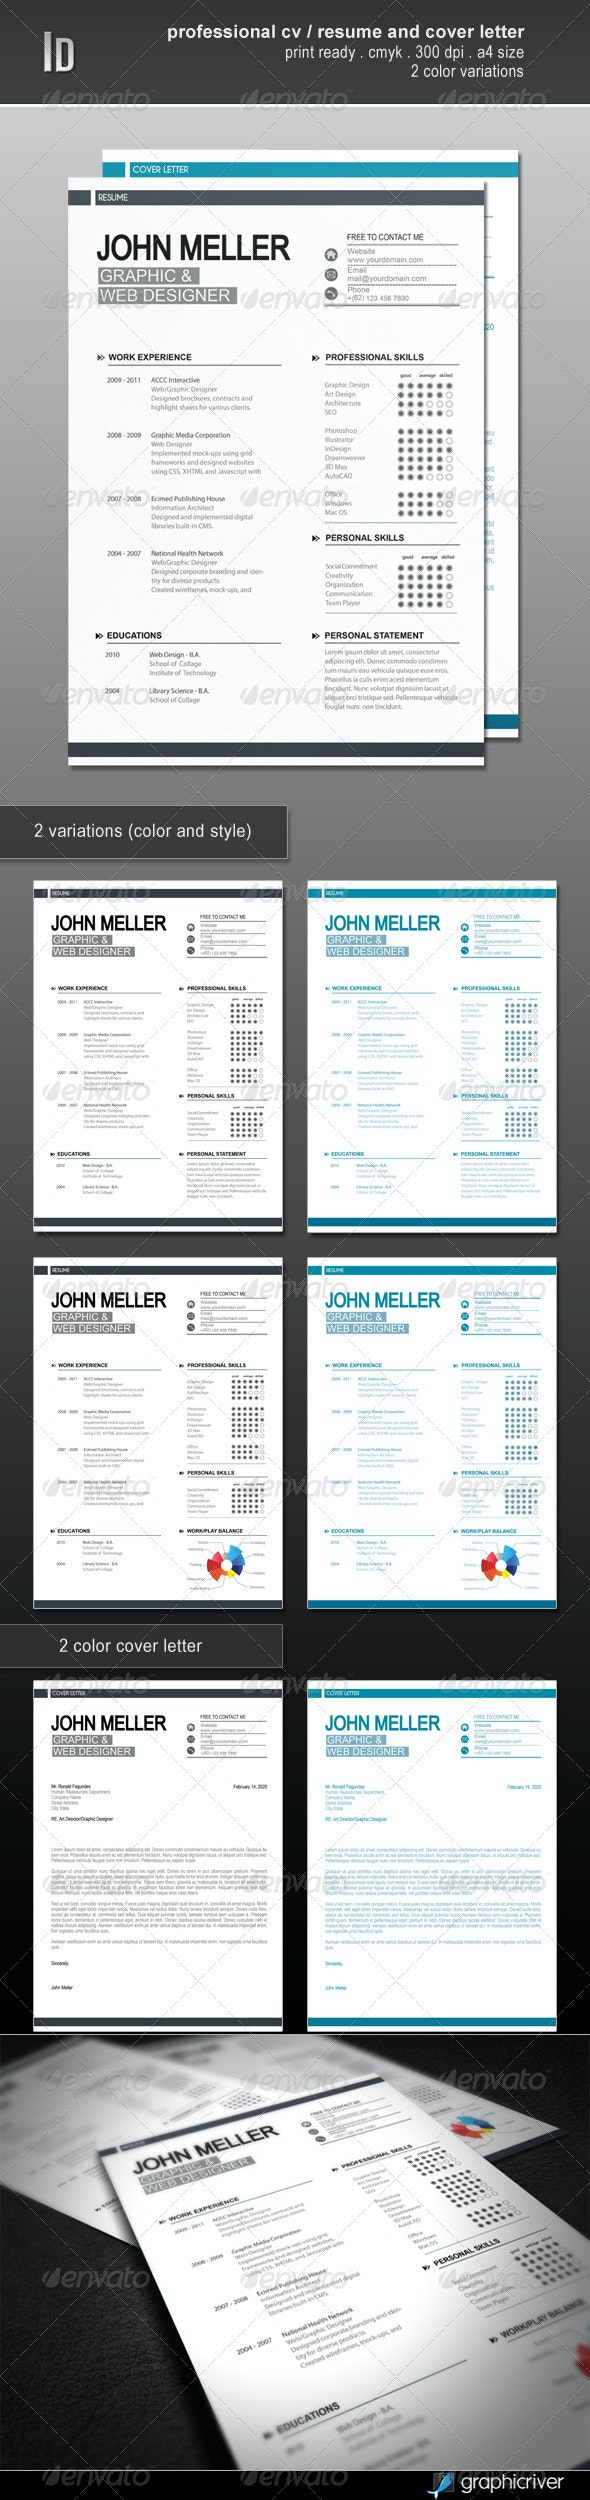 Professional Cv / Resume And Cover Letter - Resumes Stationery